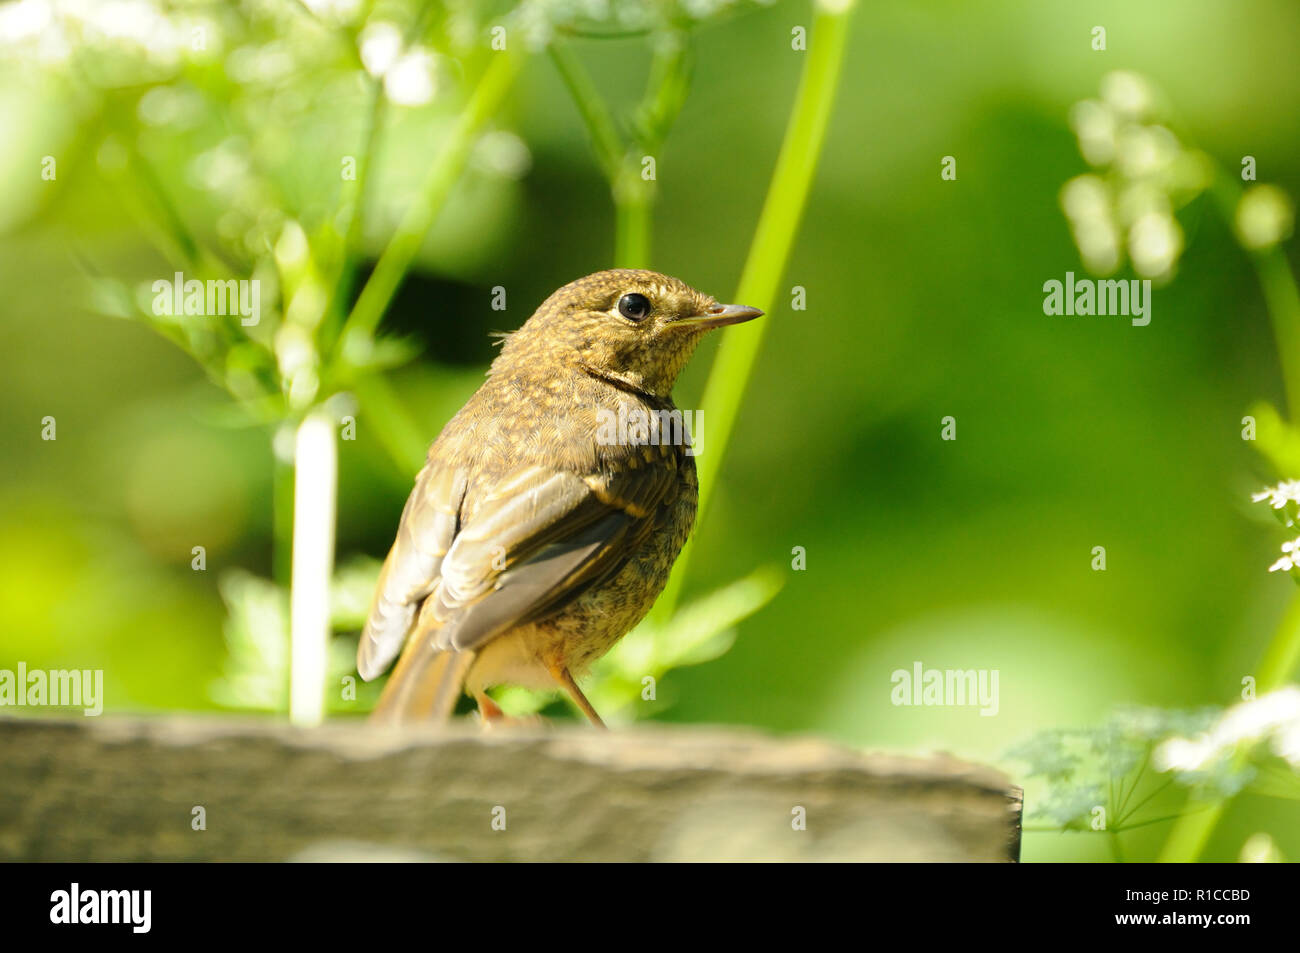 Juvenile robin checking out a feeding table, Forge Valley, North Yorkshire, England Stock Photo